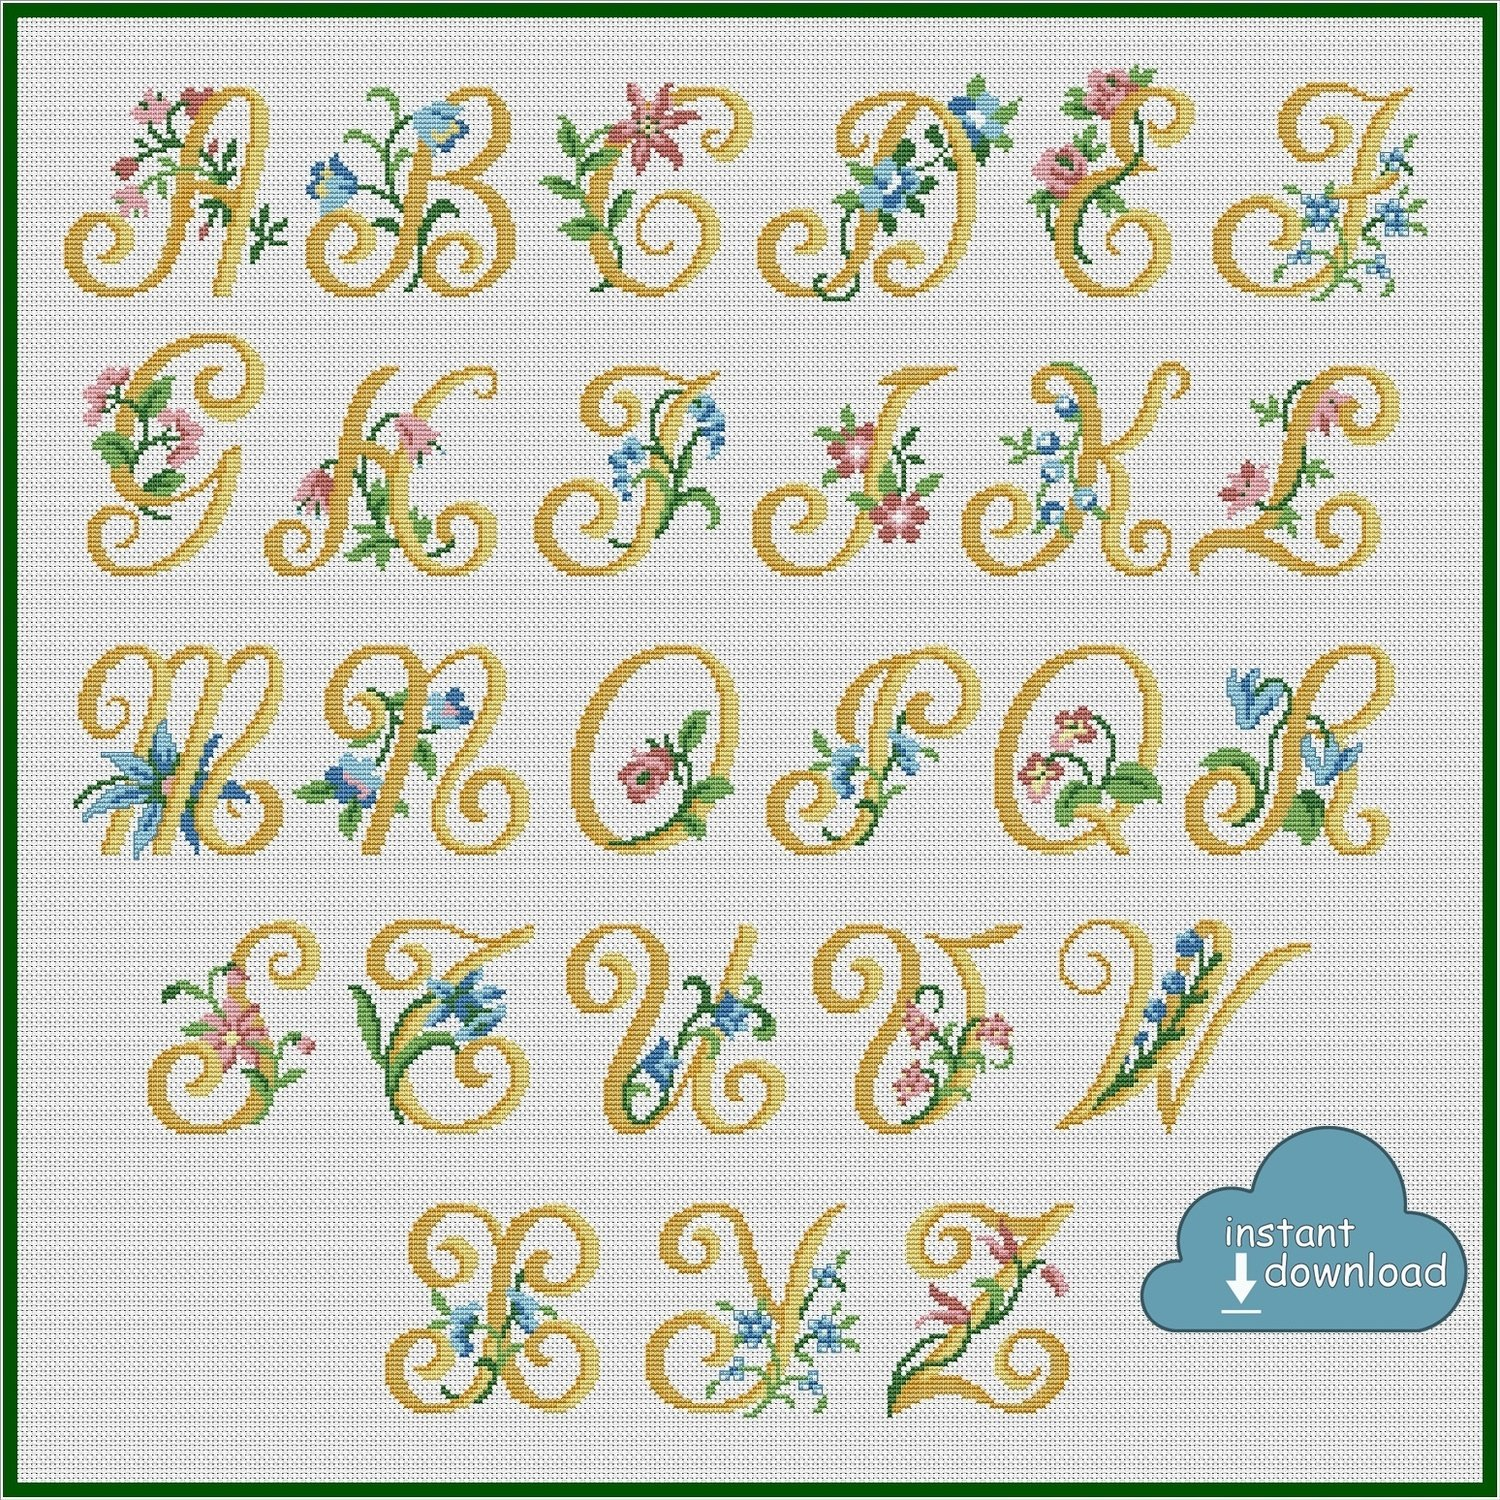 Alphabet Monogram Cross Stitch Pattern PDF + XSD. Flowers ABC Cross Stitch Chart PDF. Instant Download